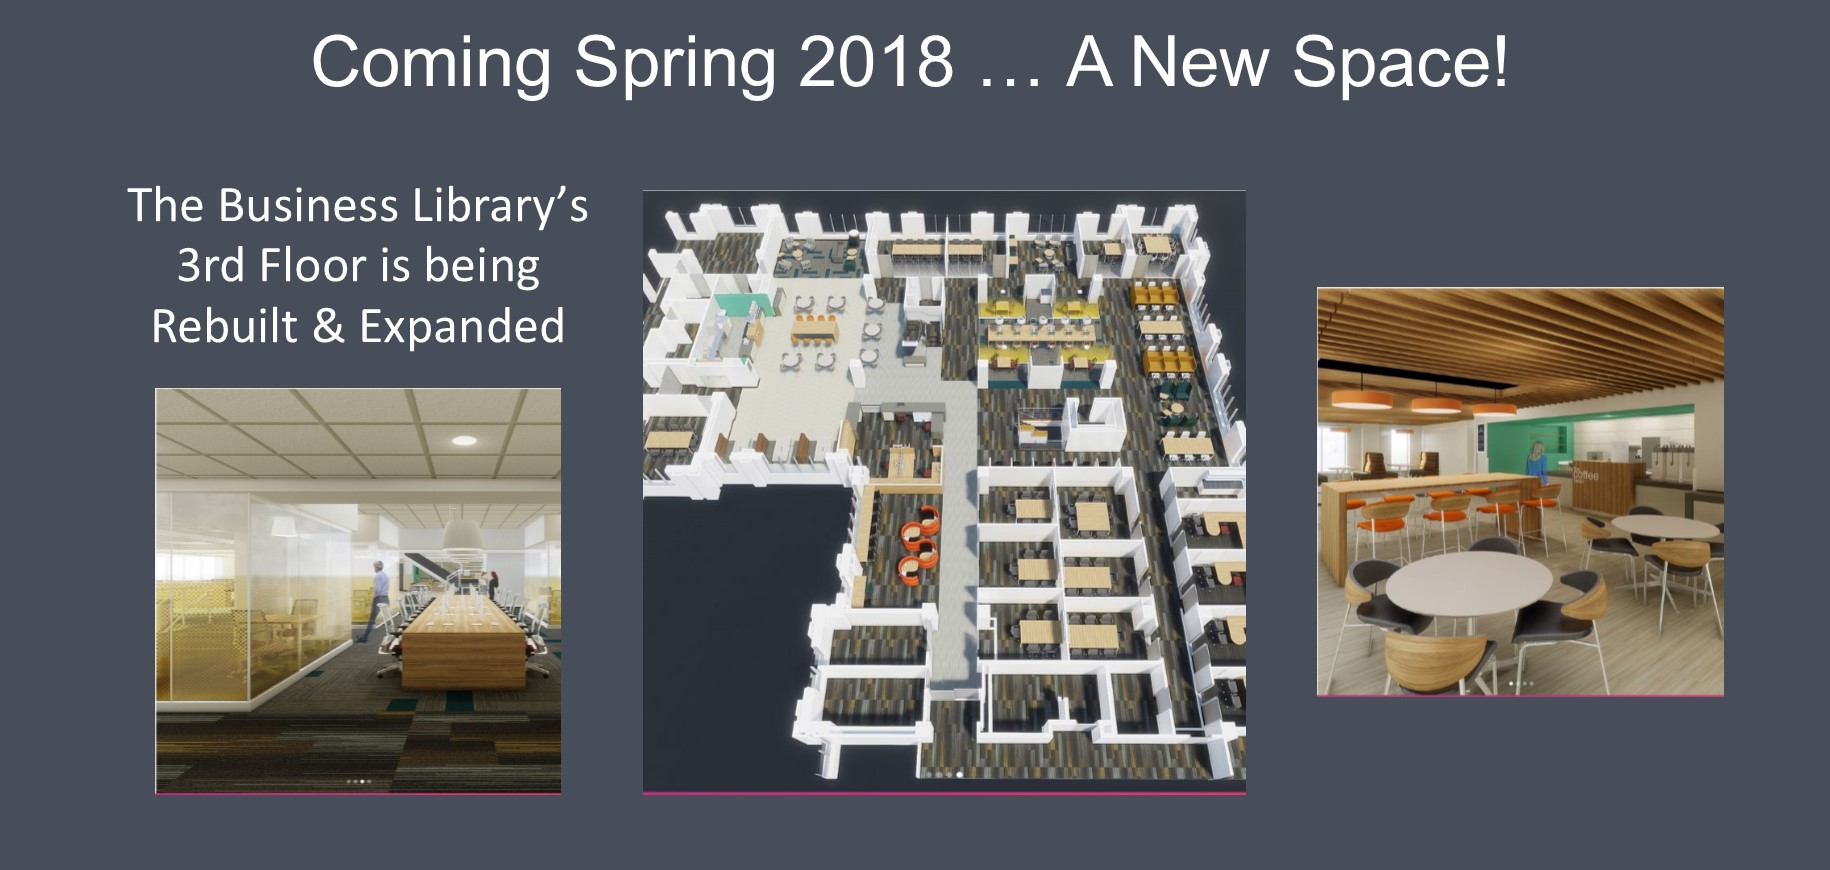 Coming in spring 2018:  a rebuilt and expanded Library 3rd floor